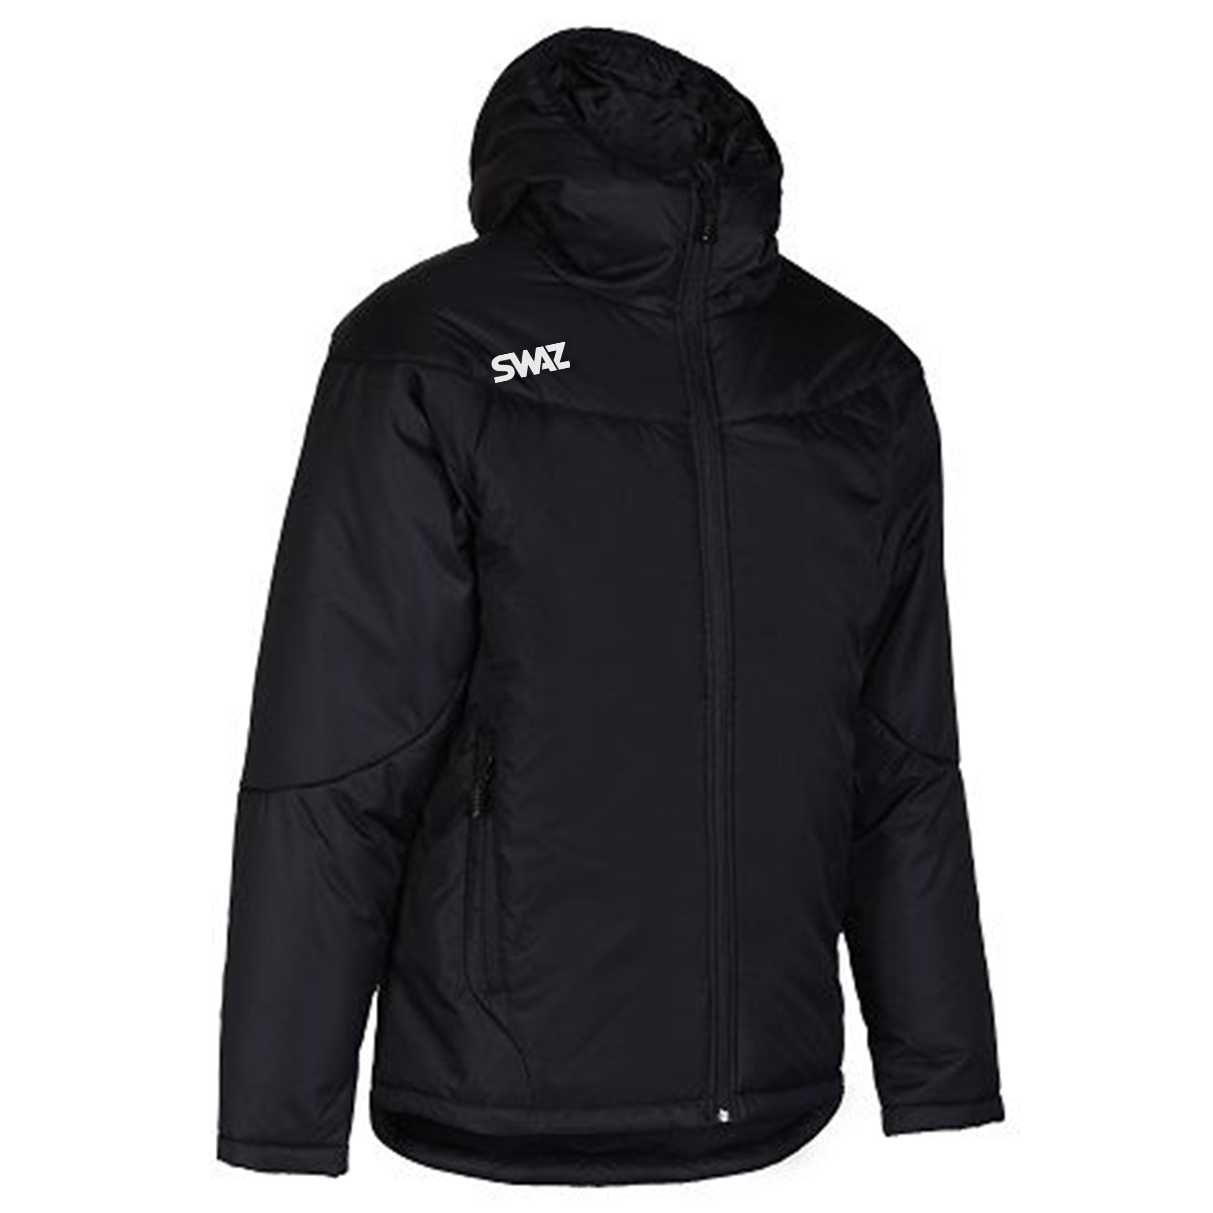 SWAZ Managers Jacket – Black